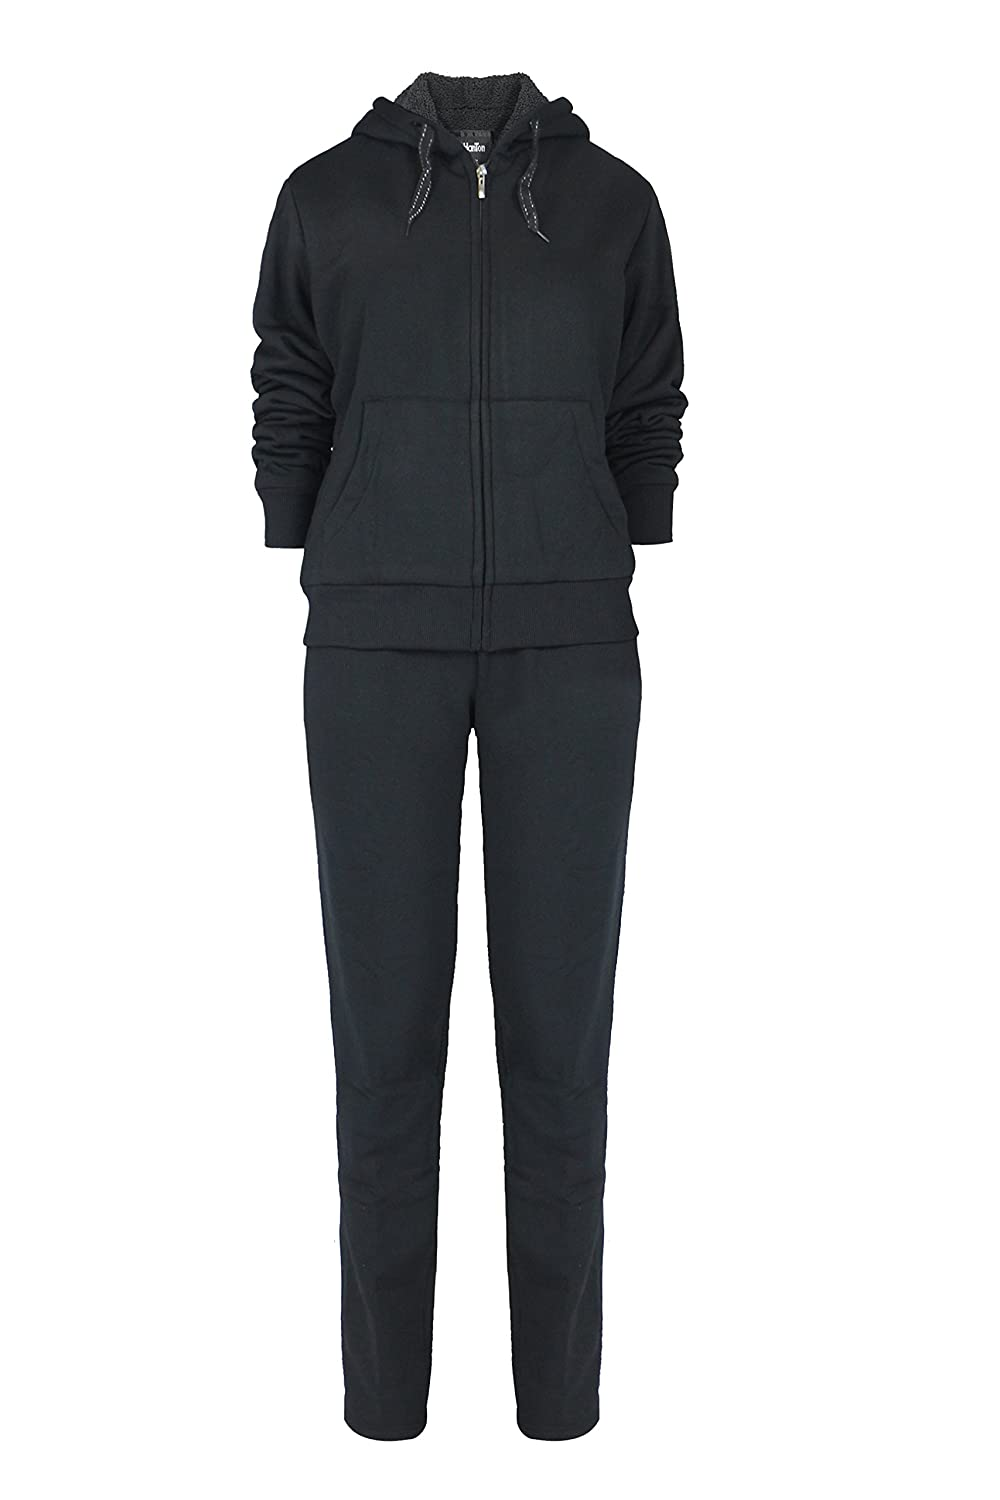 4f1b1613ad12c Full zip-front hoodie jacket  Kangaroo center front hand warmer pockets  A  wide comfortable elastic waistband sweatpants with easy adjustable drawsting